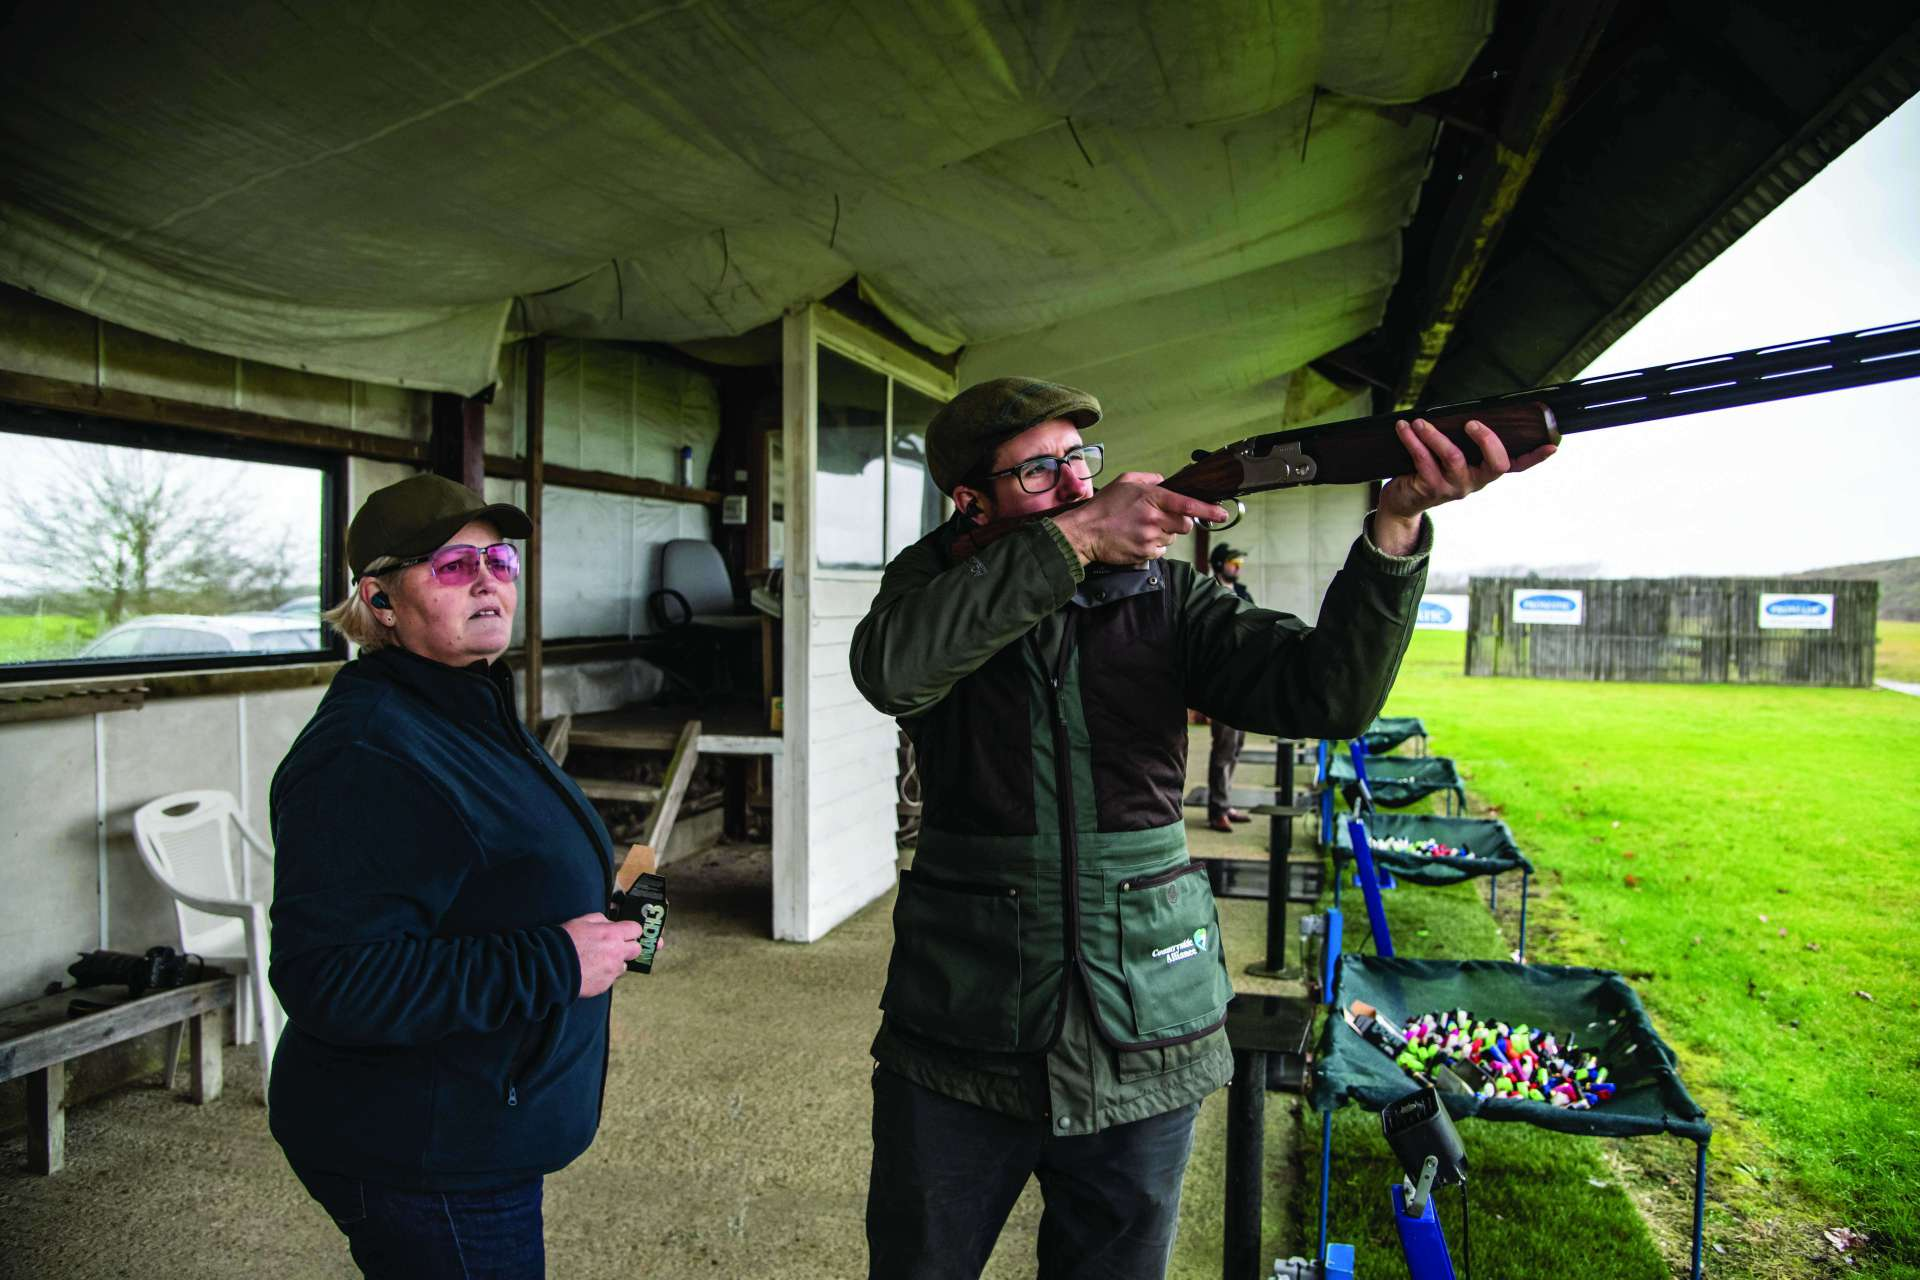 What Can Game Shooters learn from the Olympic clay disciplines of Skeet and Trap?